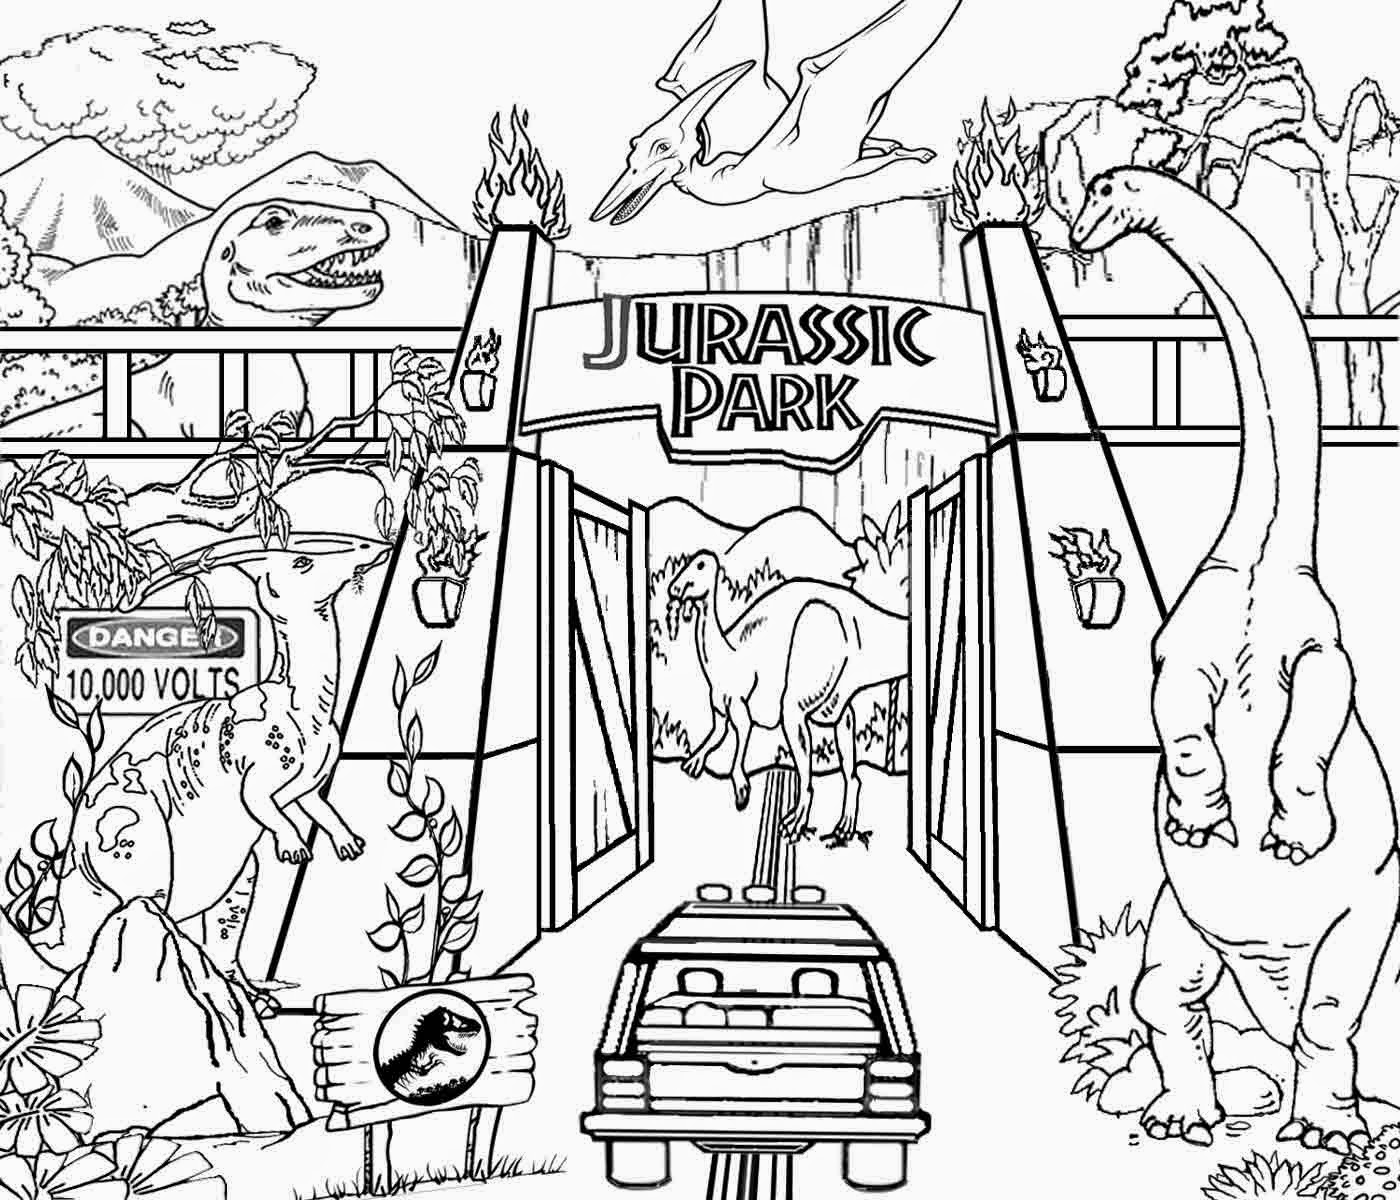 jurassic park coloring pages - discover volcano world of reptile king